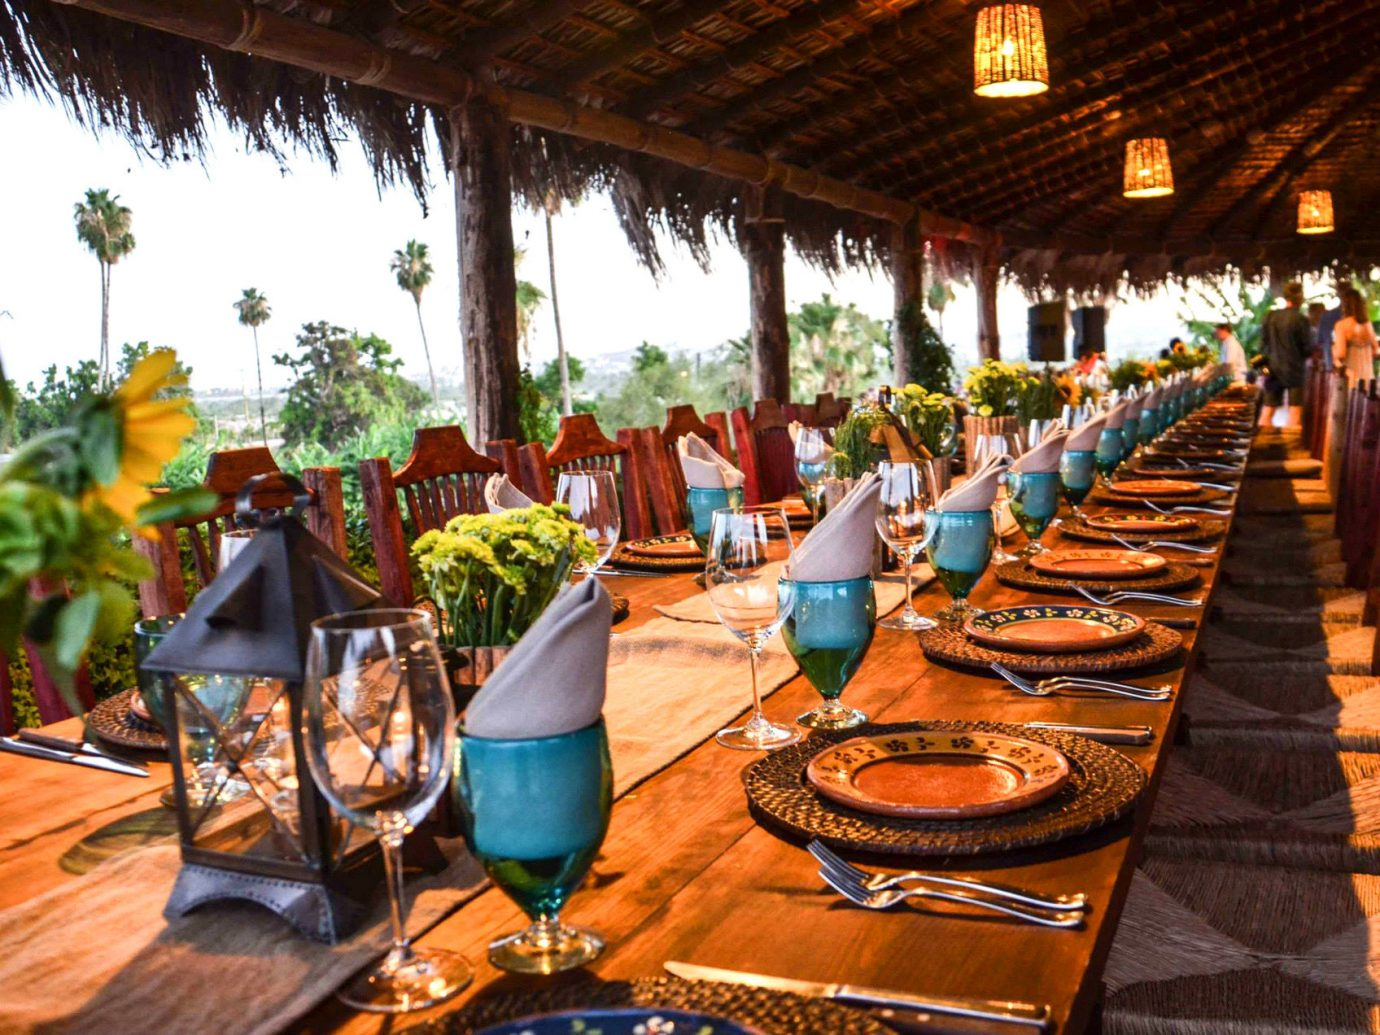 colorful Dining flowers Greenery isolation outdoor dining Outdoors private remote restaurant Rustic Scenic views table table setting thatched roof Travel Tips Trip Ideas view outdoor Resort meal tourism wooden estate wood furniture several dining table